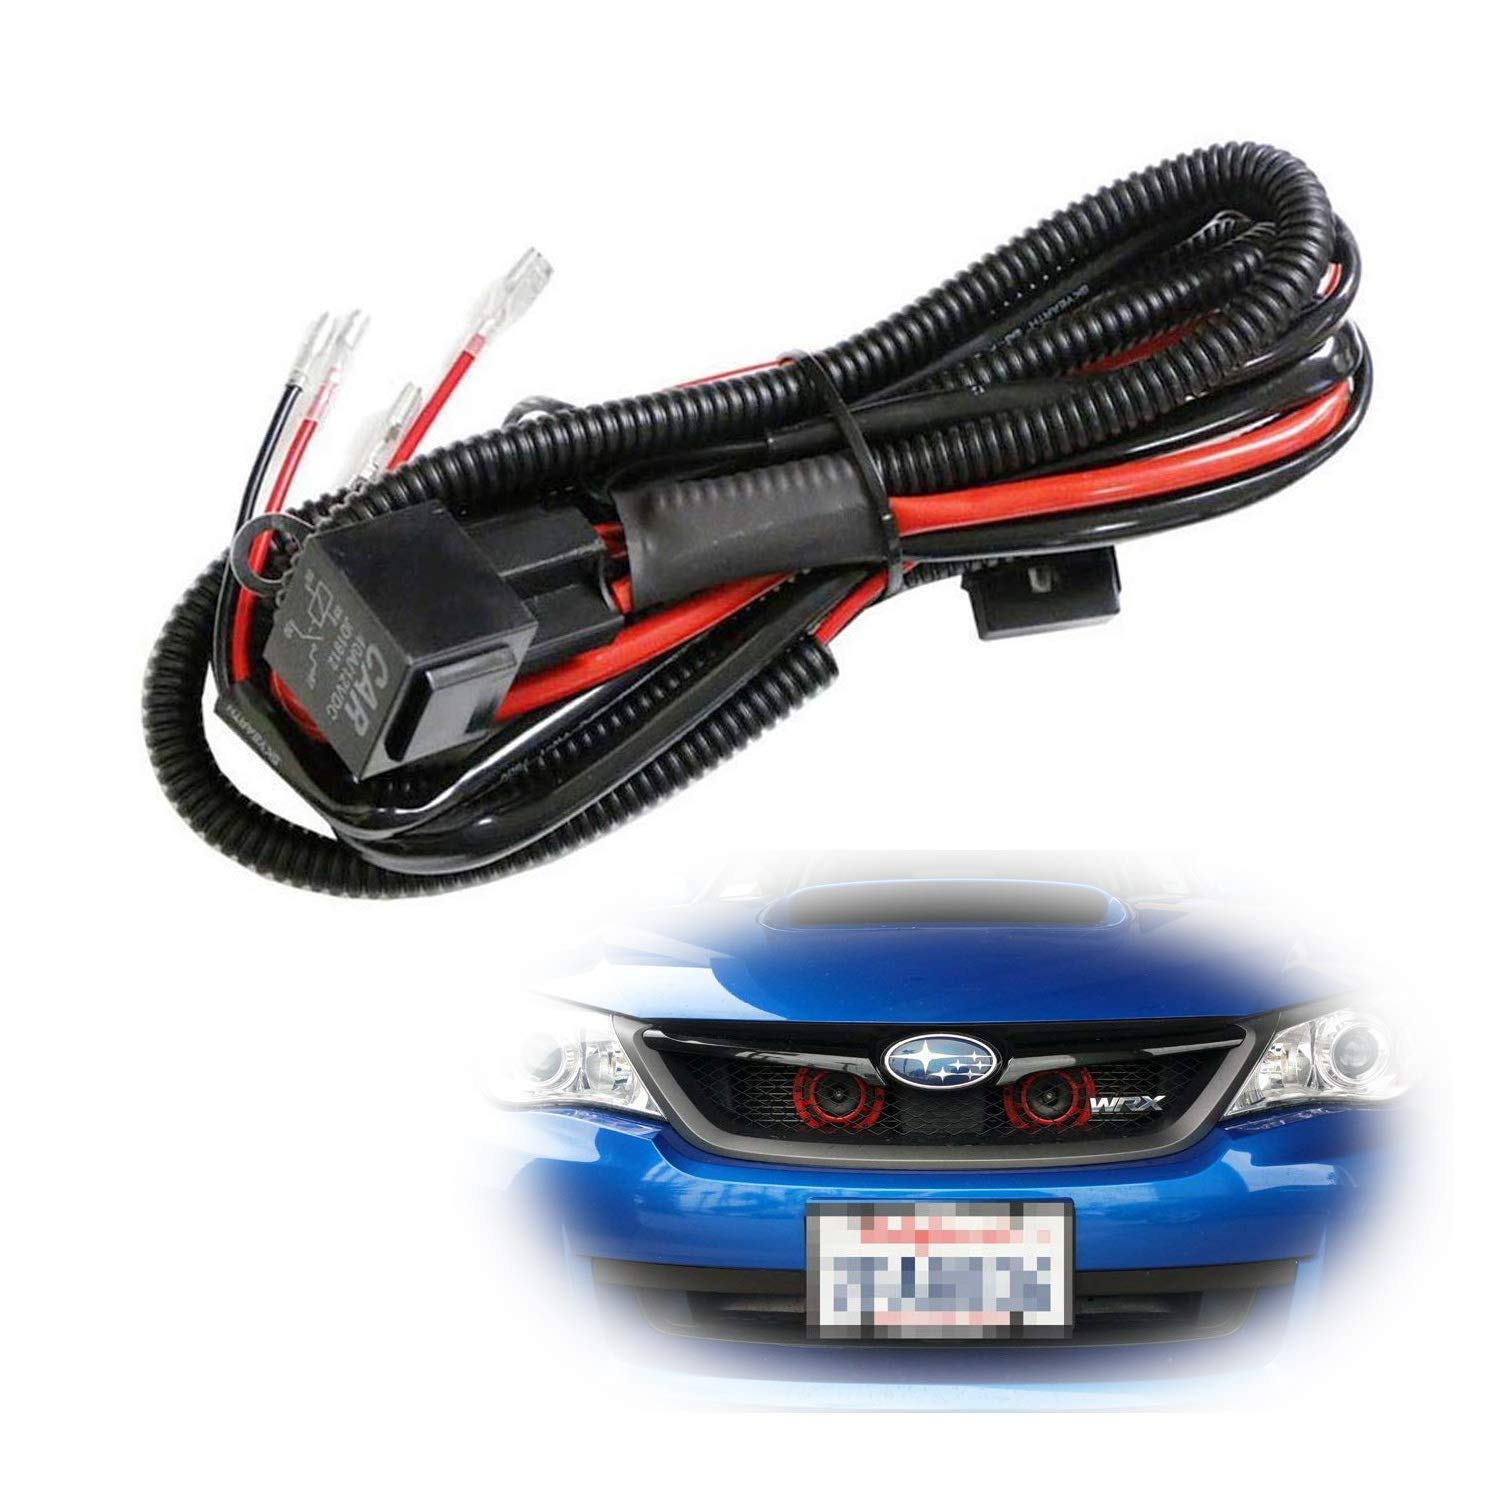 Ijdmtoy 1 12v Horn Wiring Harness Relay Kit For Car Dodge Truck Grille Mount Blast Tone Horns Actual Not Included Automotive